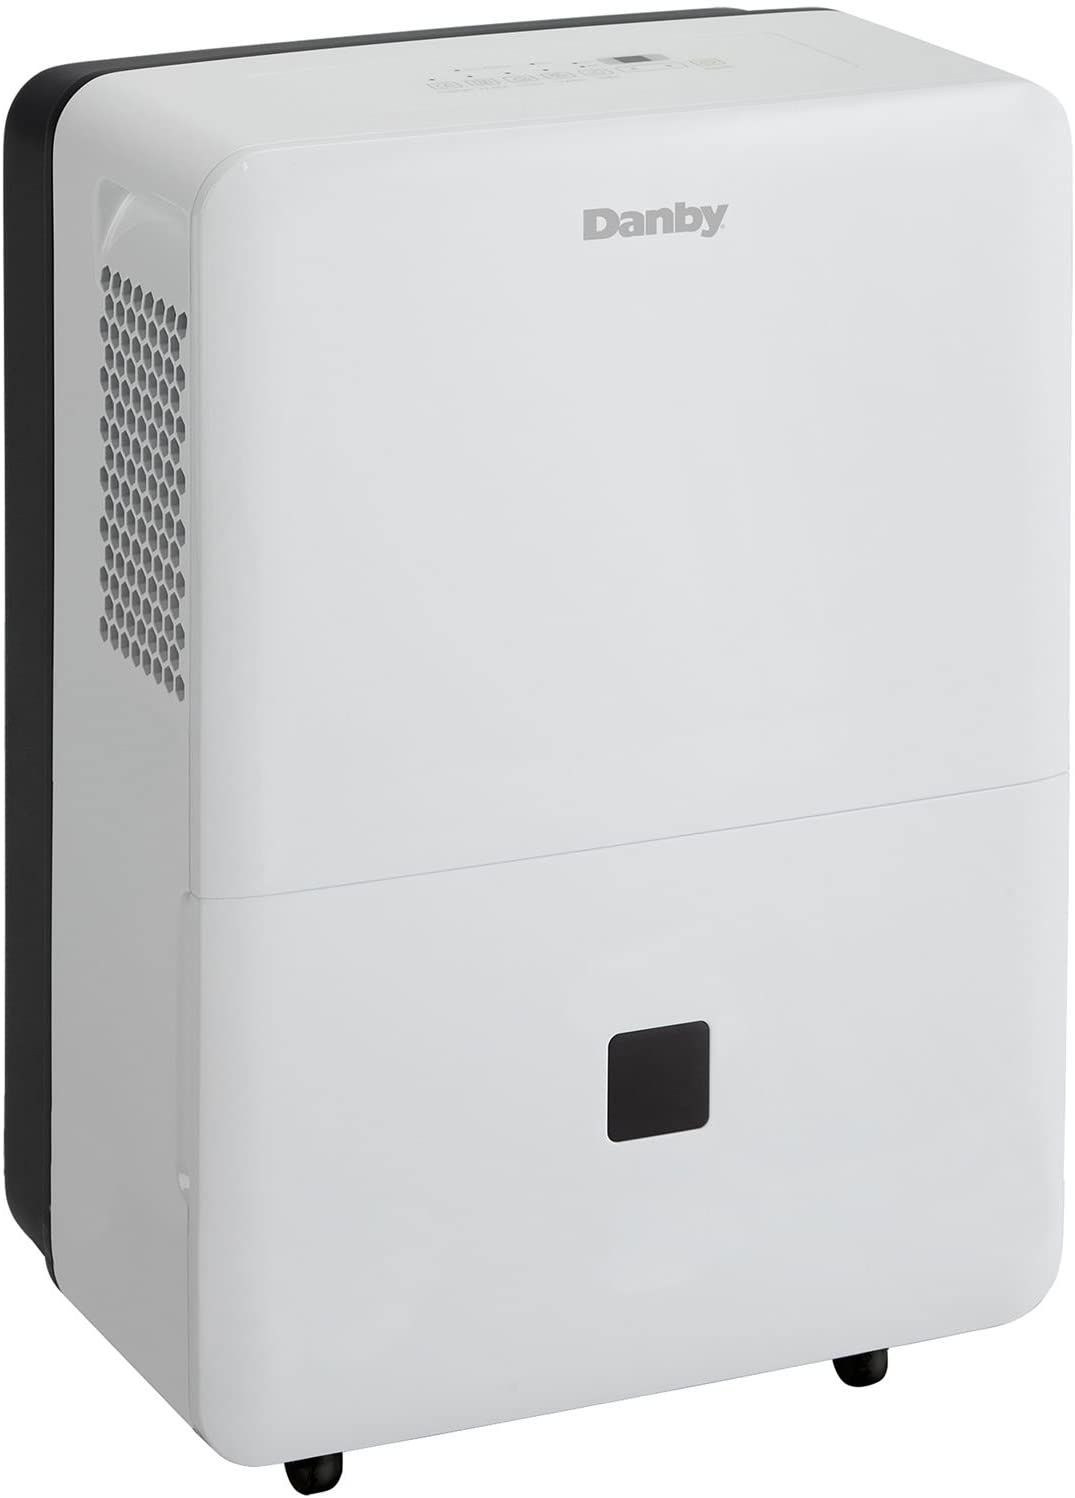 Danby Energy Star 50-Pint Dehumidifier